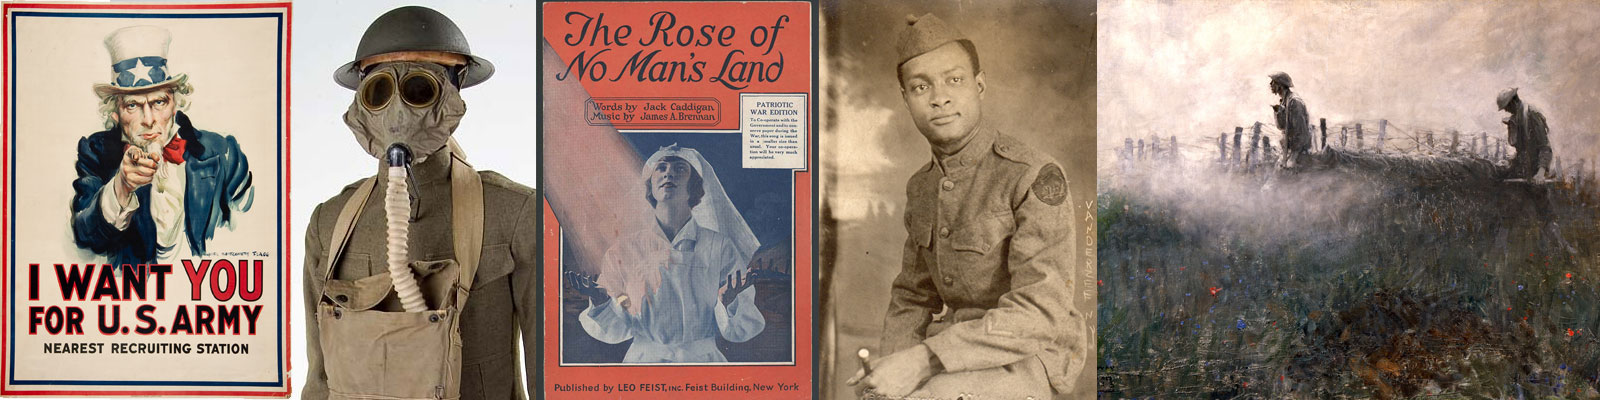 (from left to right) 'I Want You for U.S. Army' World War I recruitment poster by James Mongtomery Flagg, U.S. Army 'Doughboy' uniform worn by enlisted soldiers in World War I, 'The Rose of No Man's Land' World War I sheet music by Jack Caddigan and James A. Brennan, An unidentified soldier with the 92nd Infantry Division or 'Buffalo Soldiers' Division, U.S. Army, World War I, 'On the Wire' painting by Harvey Thomas Dunn, official artist of the American Expeditionary Forces (AEF) in World War I